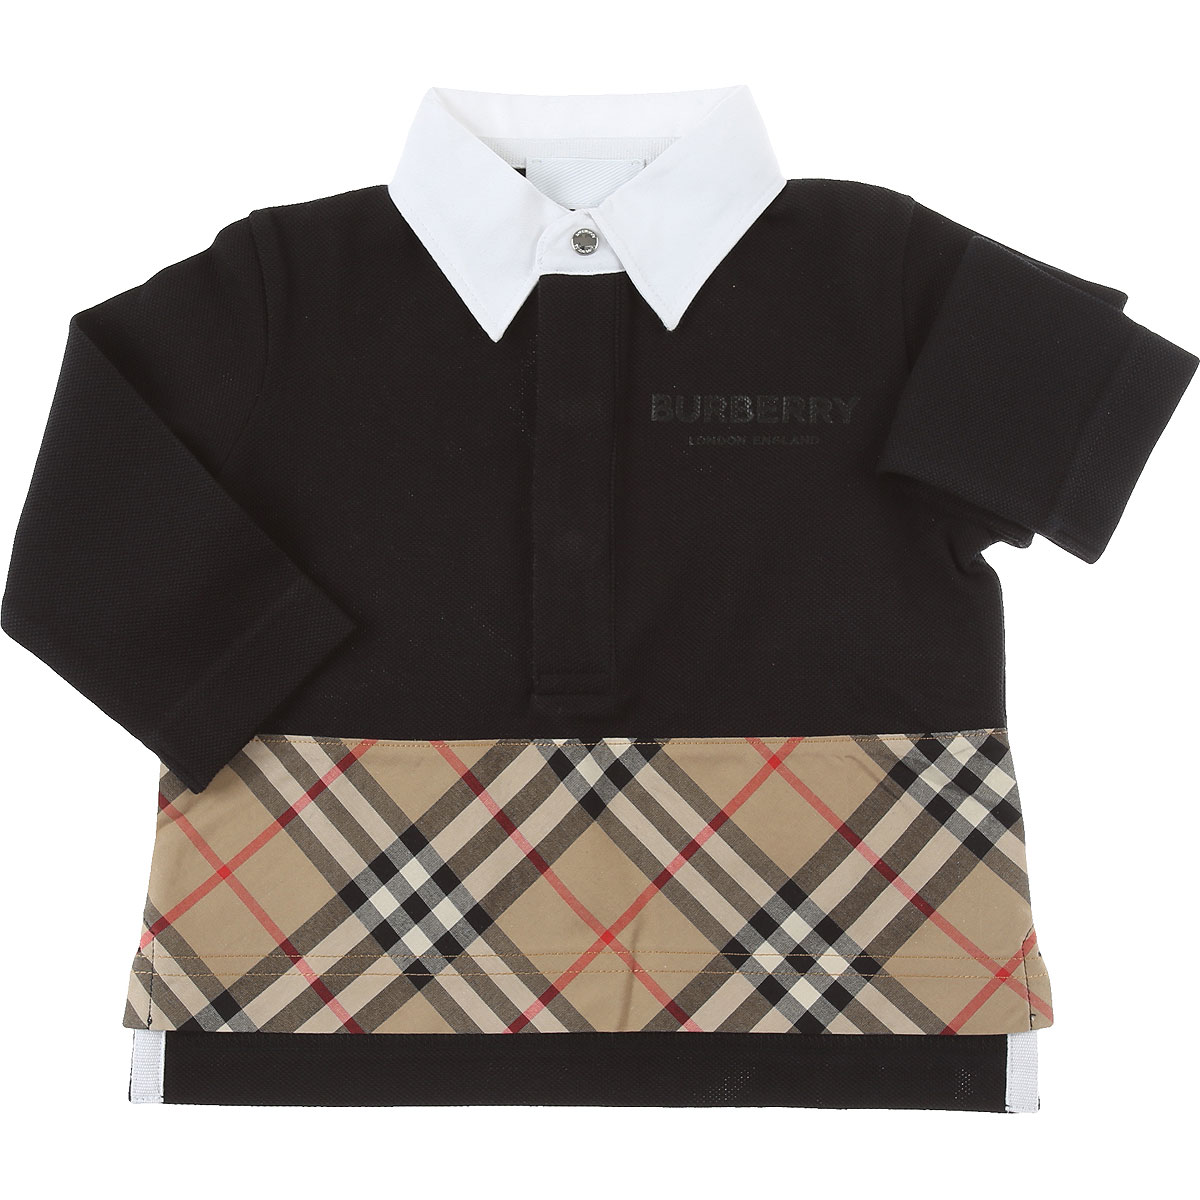 Burberry Baby Polo Shirt for Boys On Sale, Black, Cotton, 2019, 12 M 18M 2Y 6M